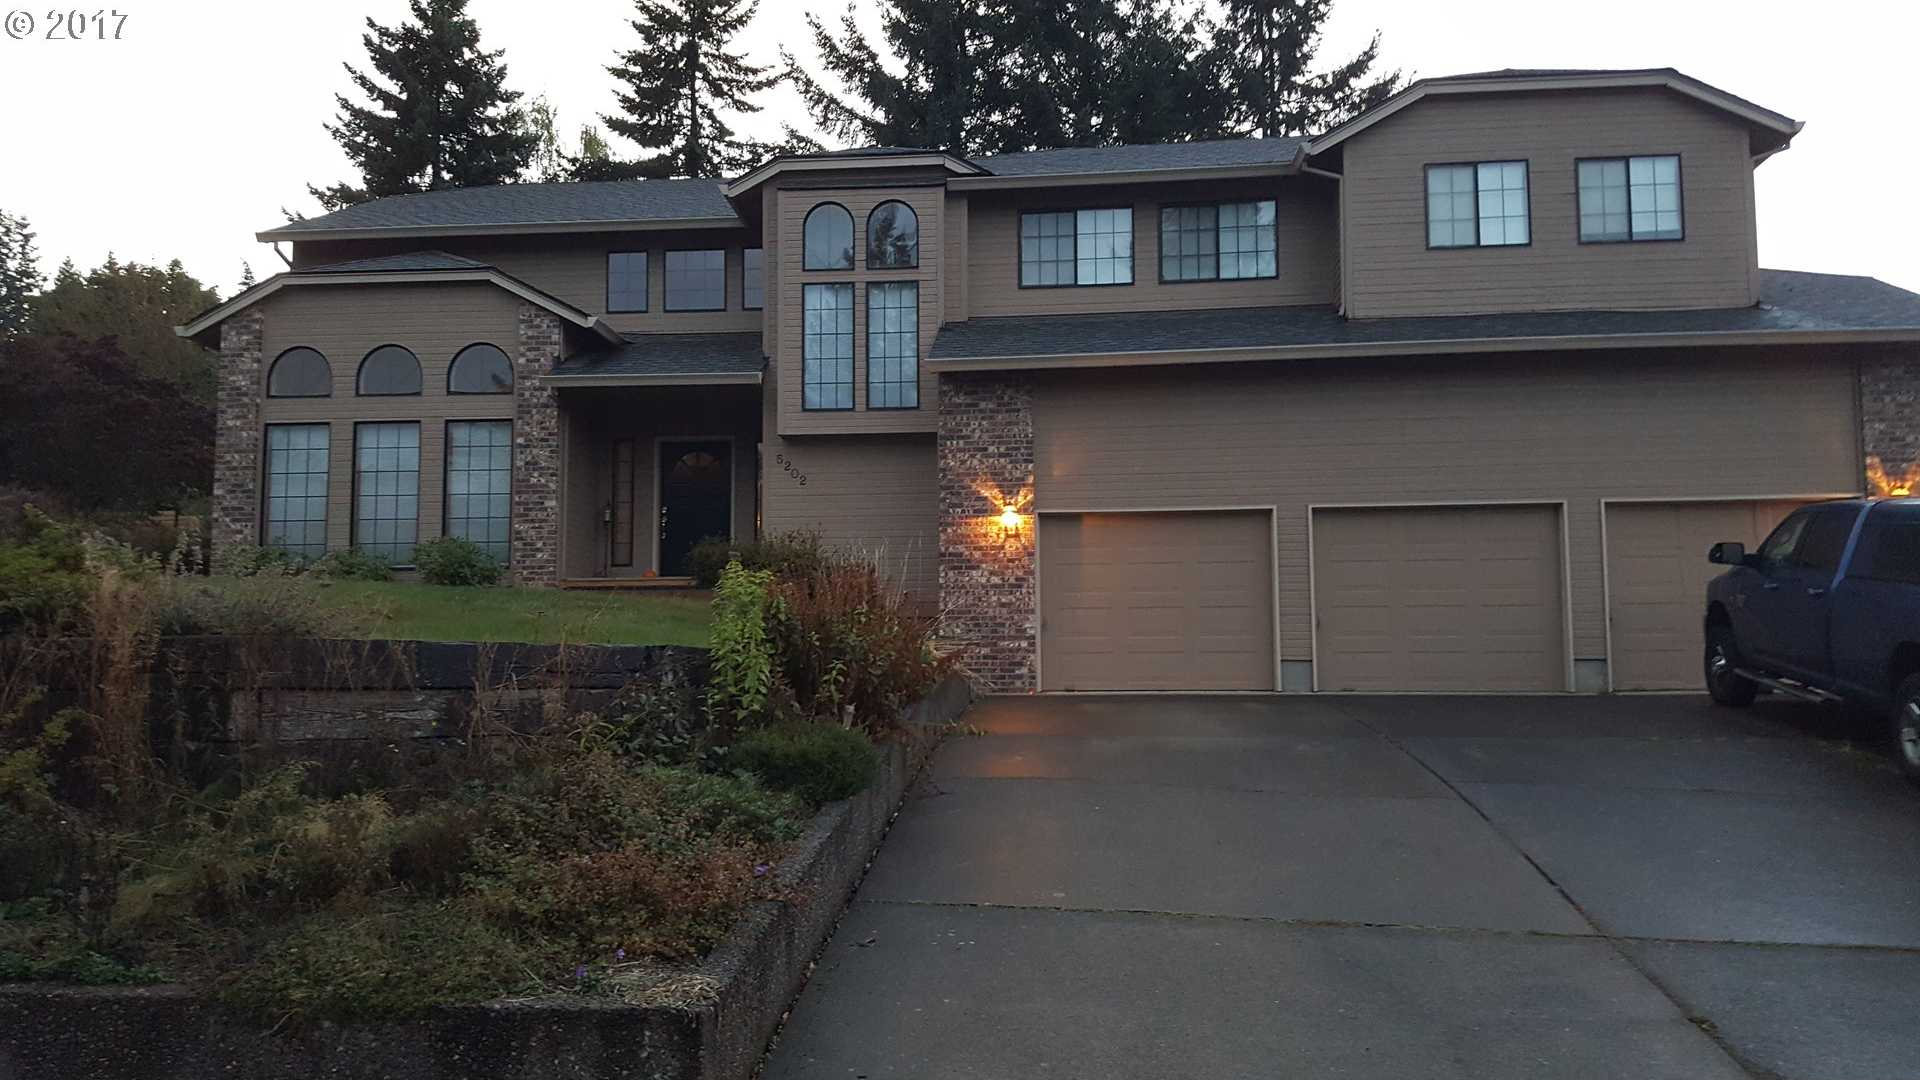 $499,000 - 5Br/3Ba -  for Sale in West Linn